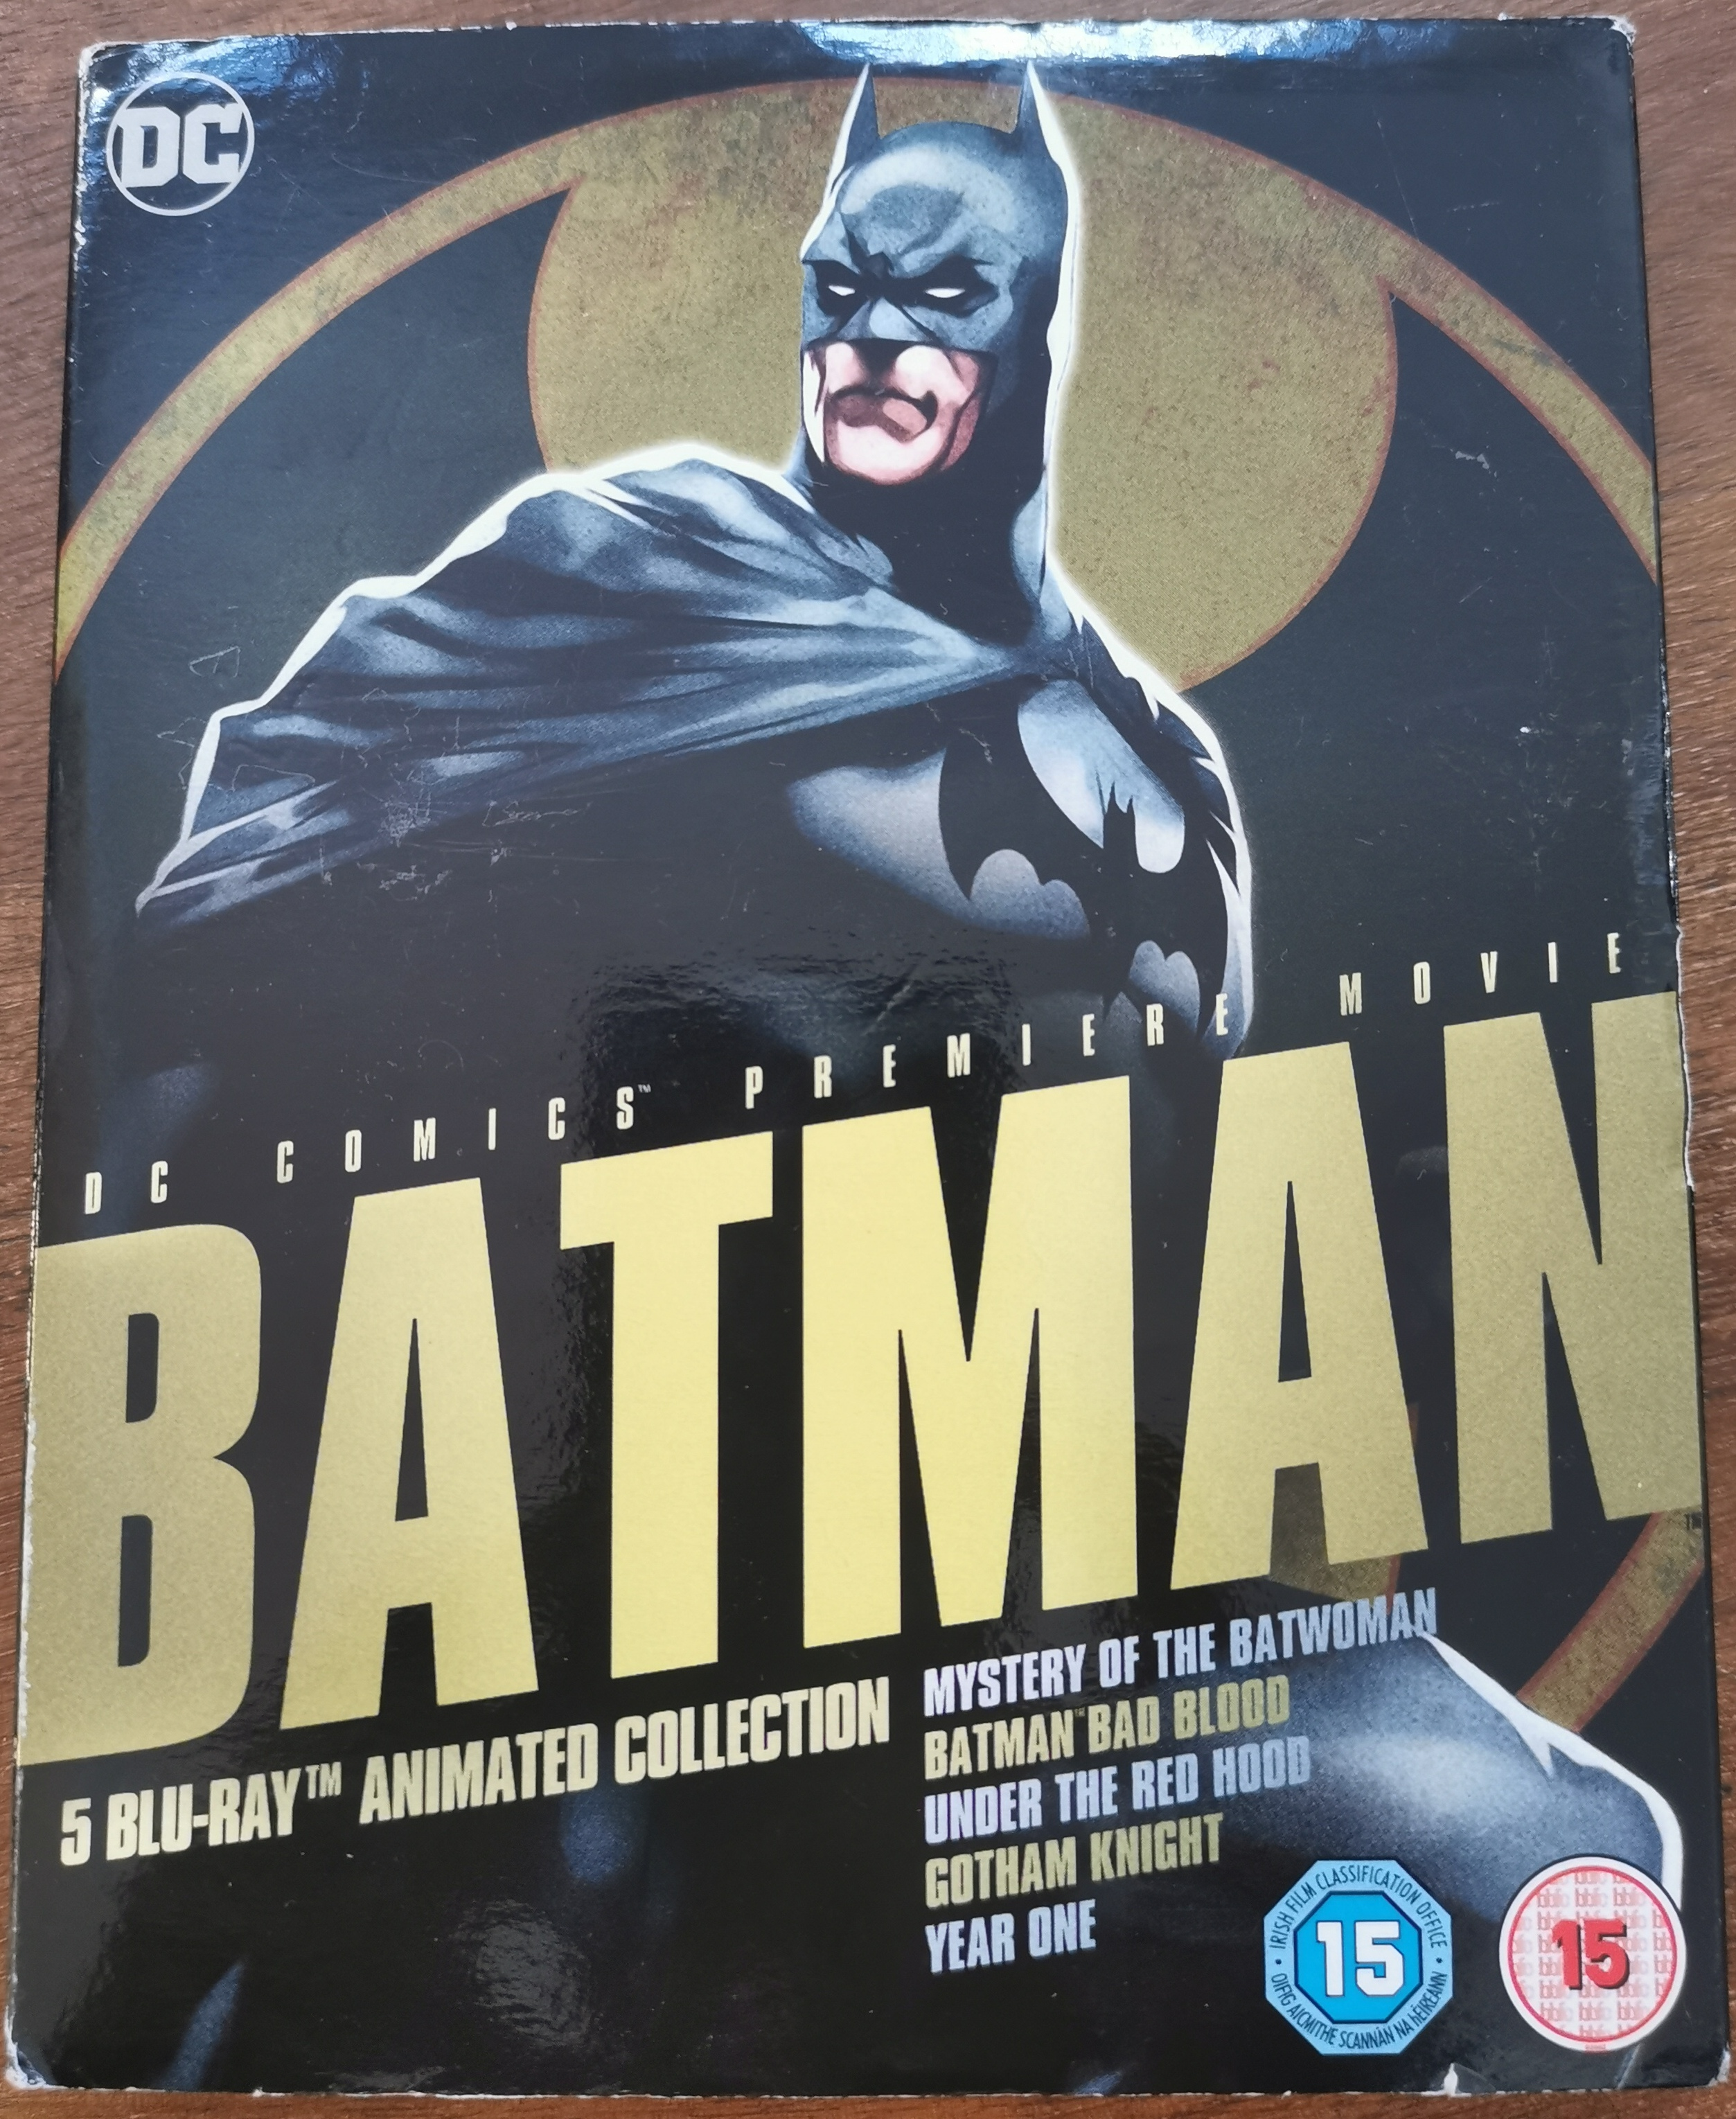 Batman Animated Collection: Reviews of Five Movies